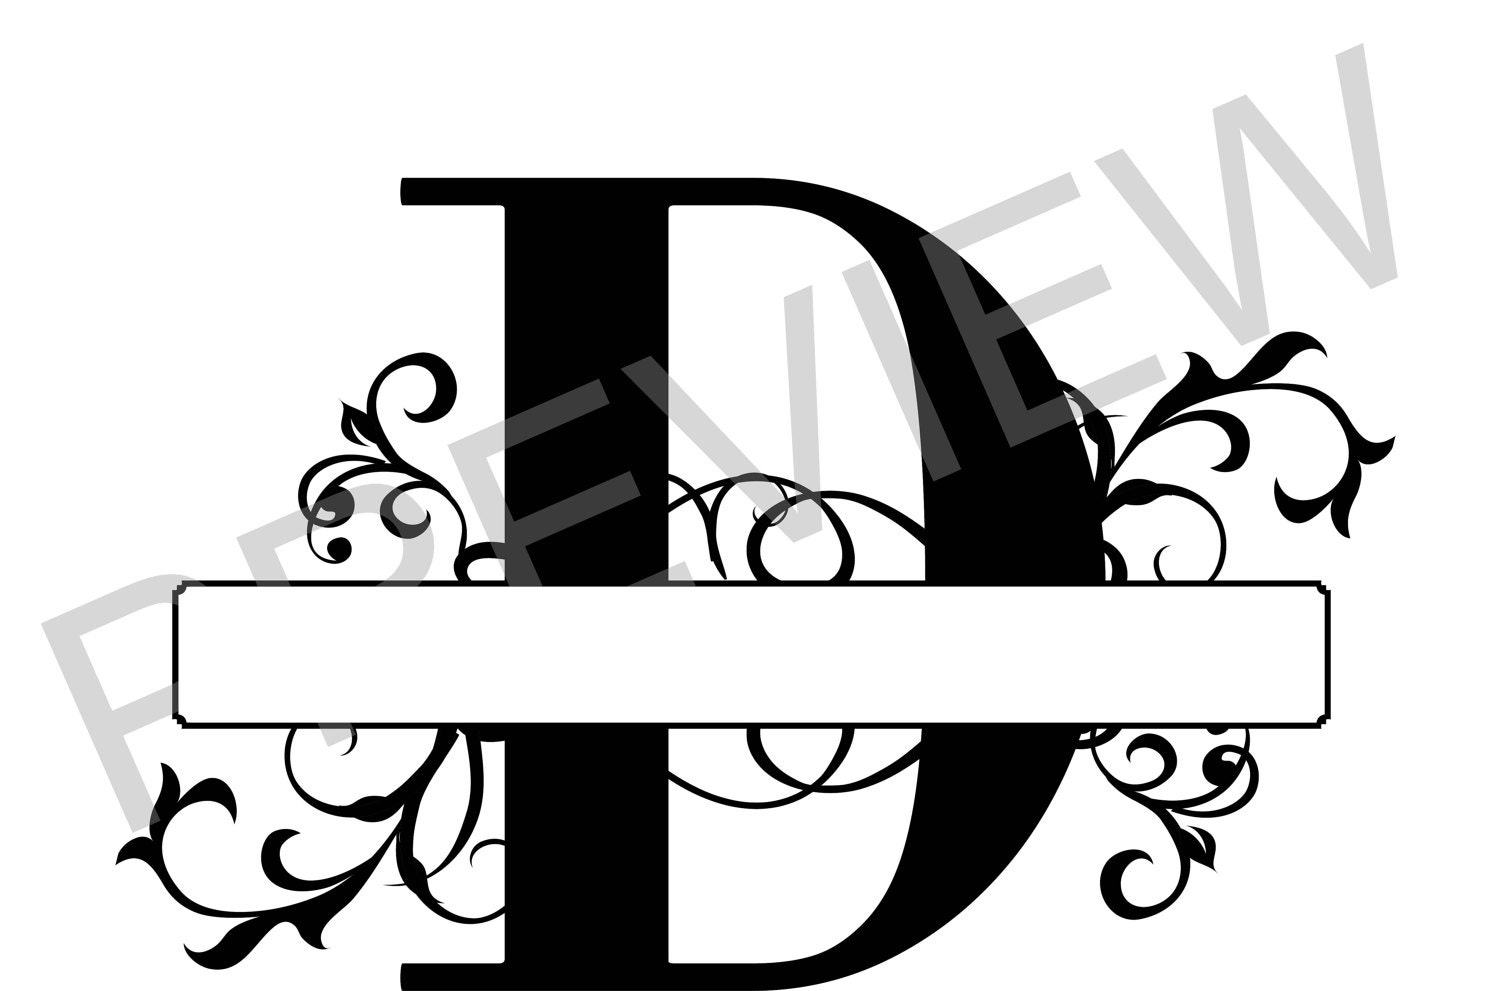 split monogram svg  letter d regal split alphabet  vector files for silhouette  silhouette